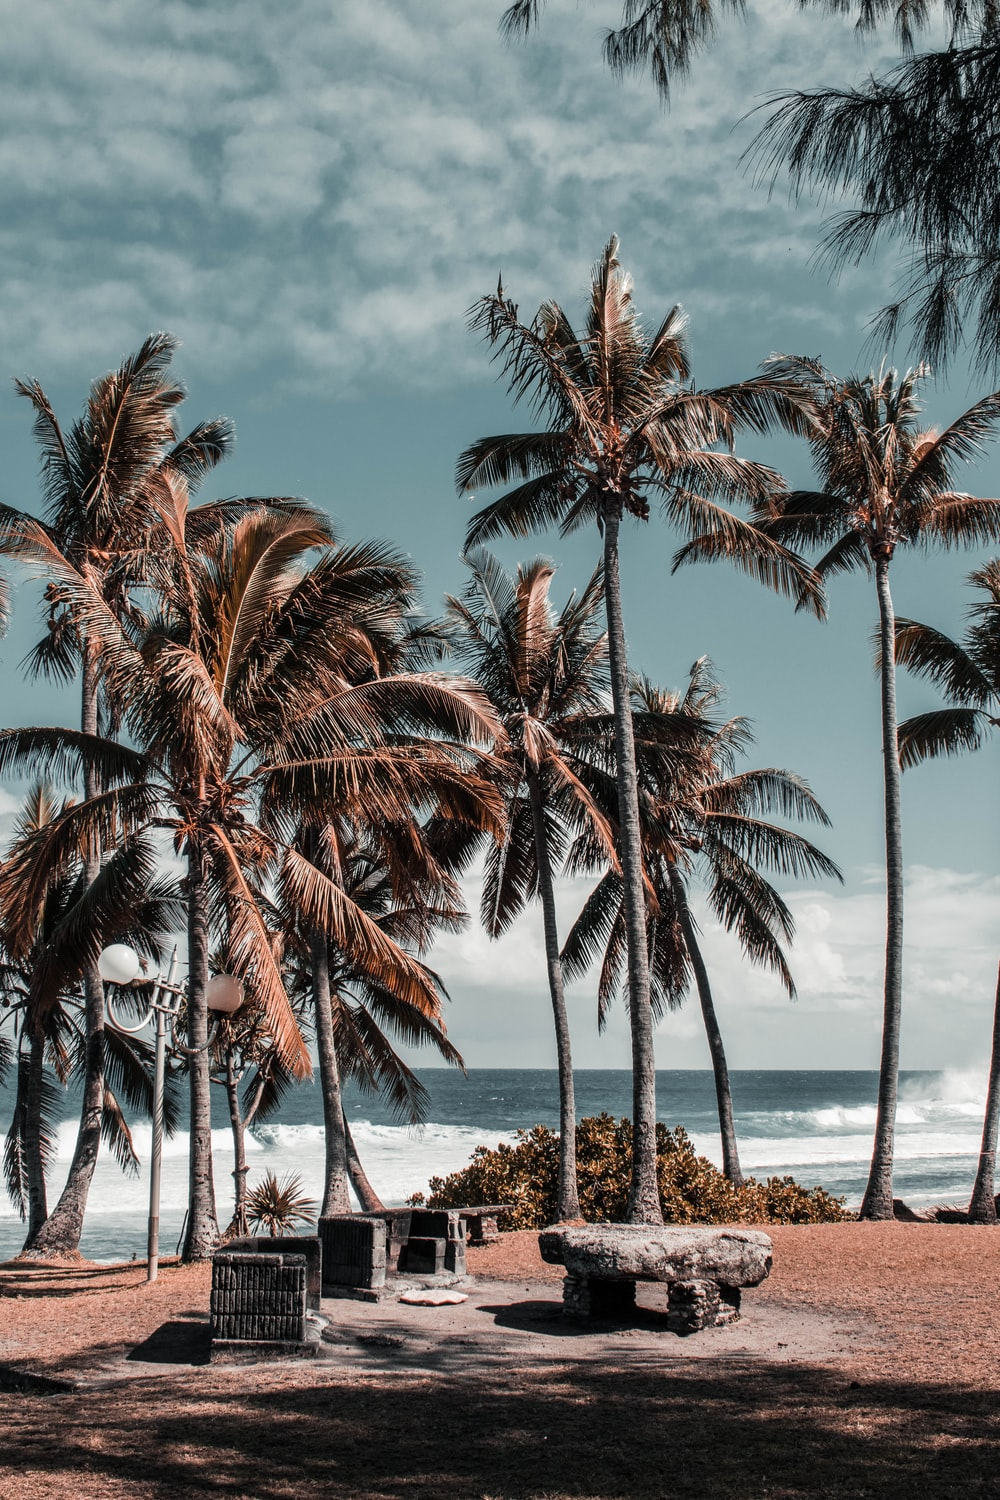 field of palm trees on shore